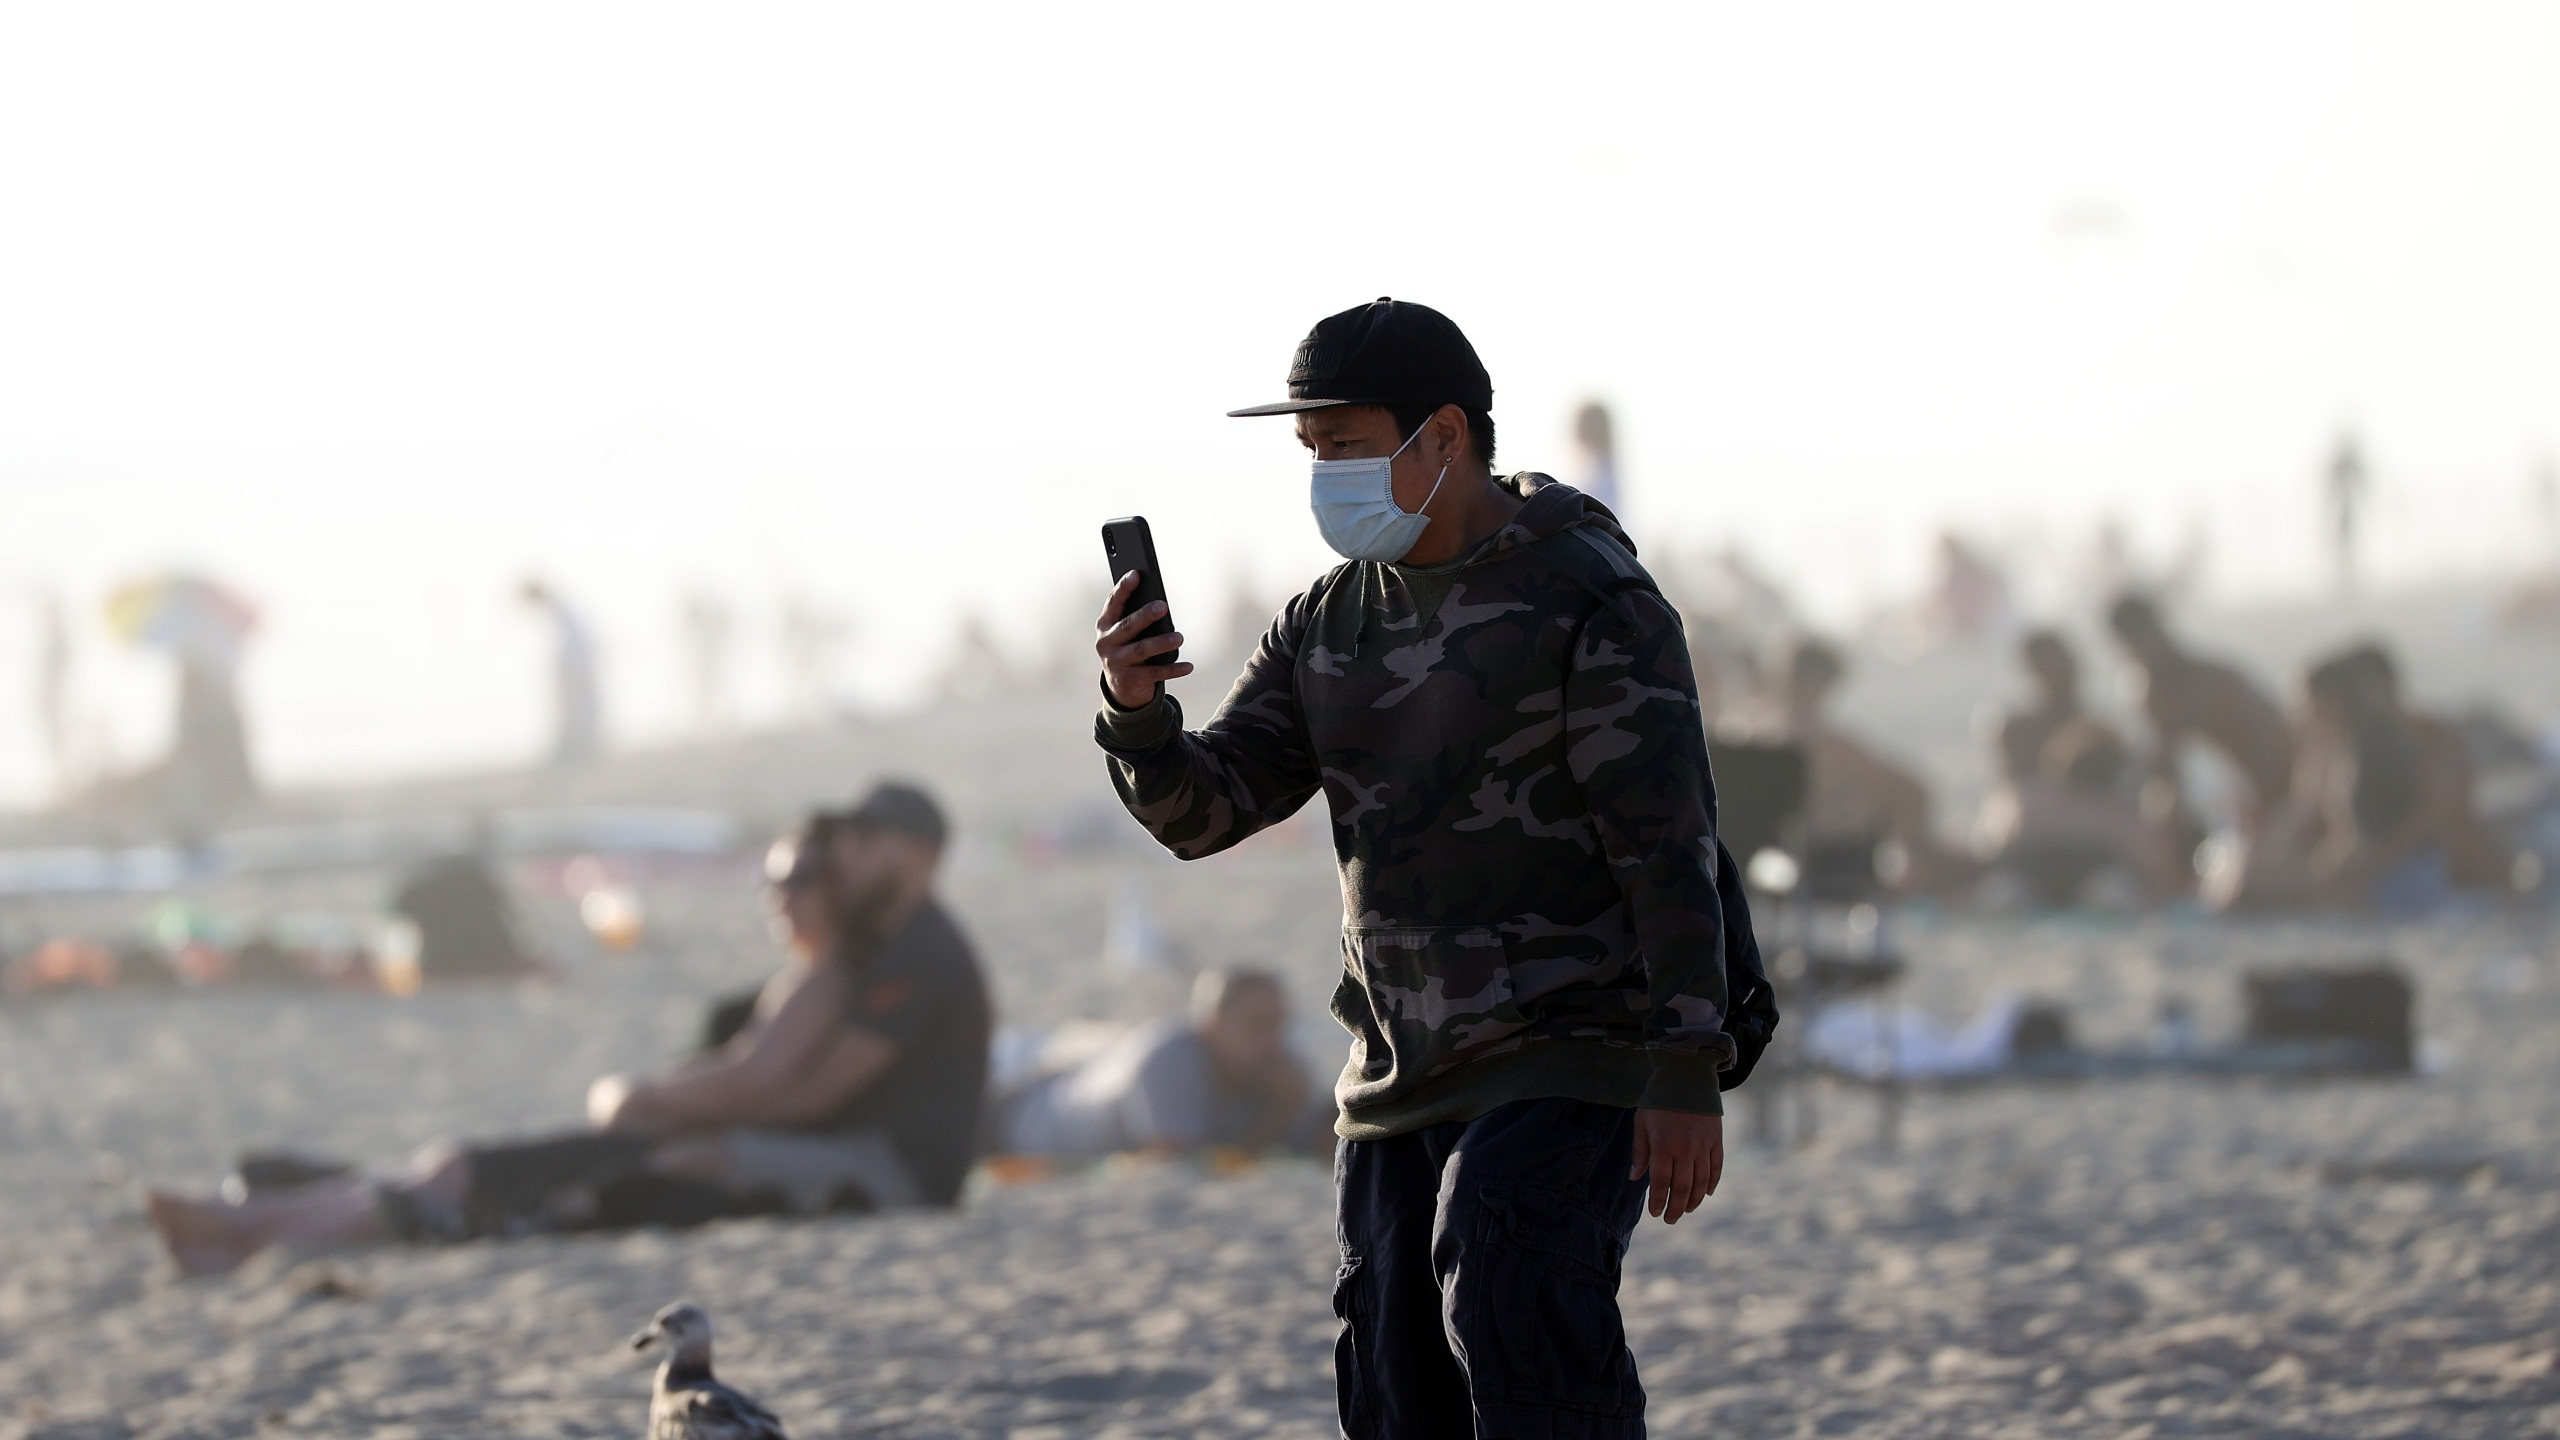 A person looks at his phone on April 30, 2020, in Huntington Beach, California. (Michael Heiman/Getty Images)